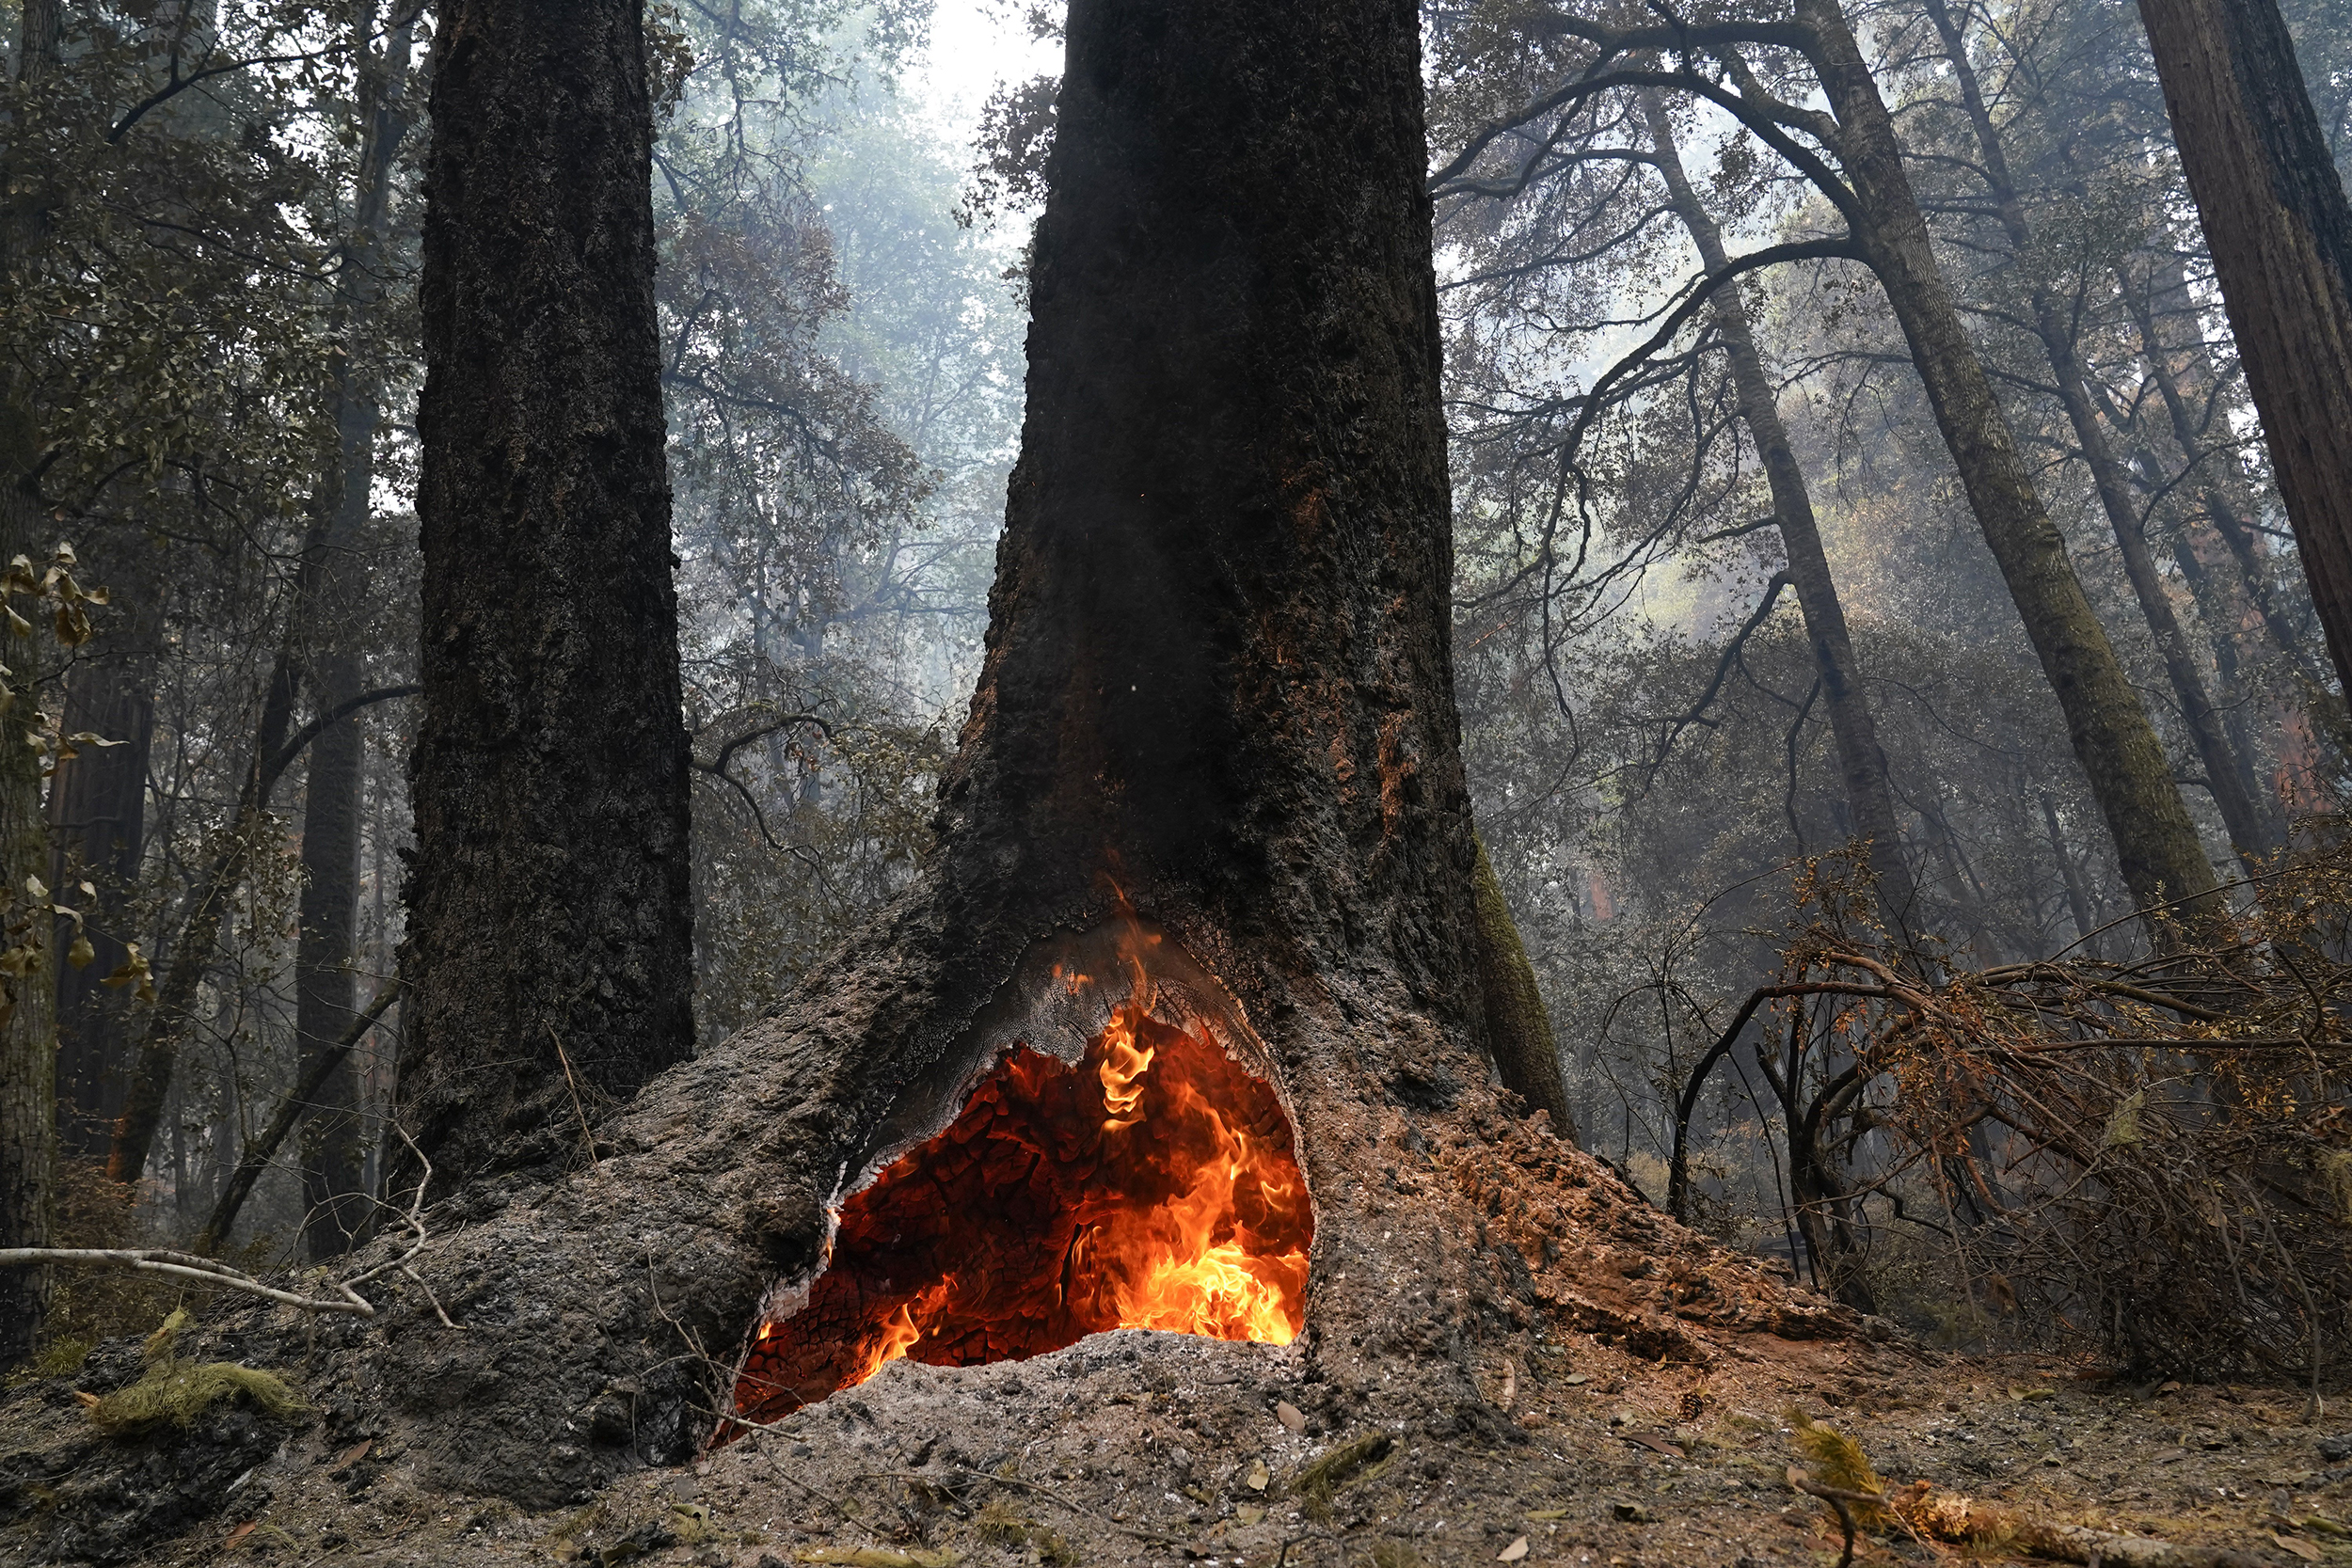 Iconic California redwoods threatened by climate change